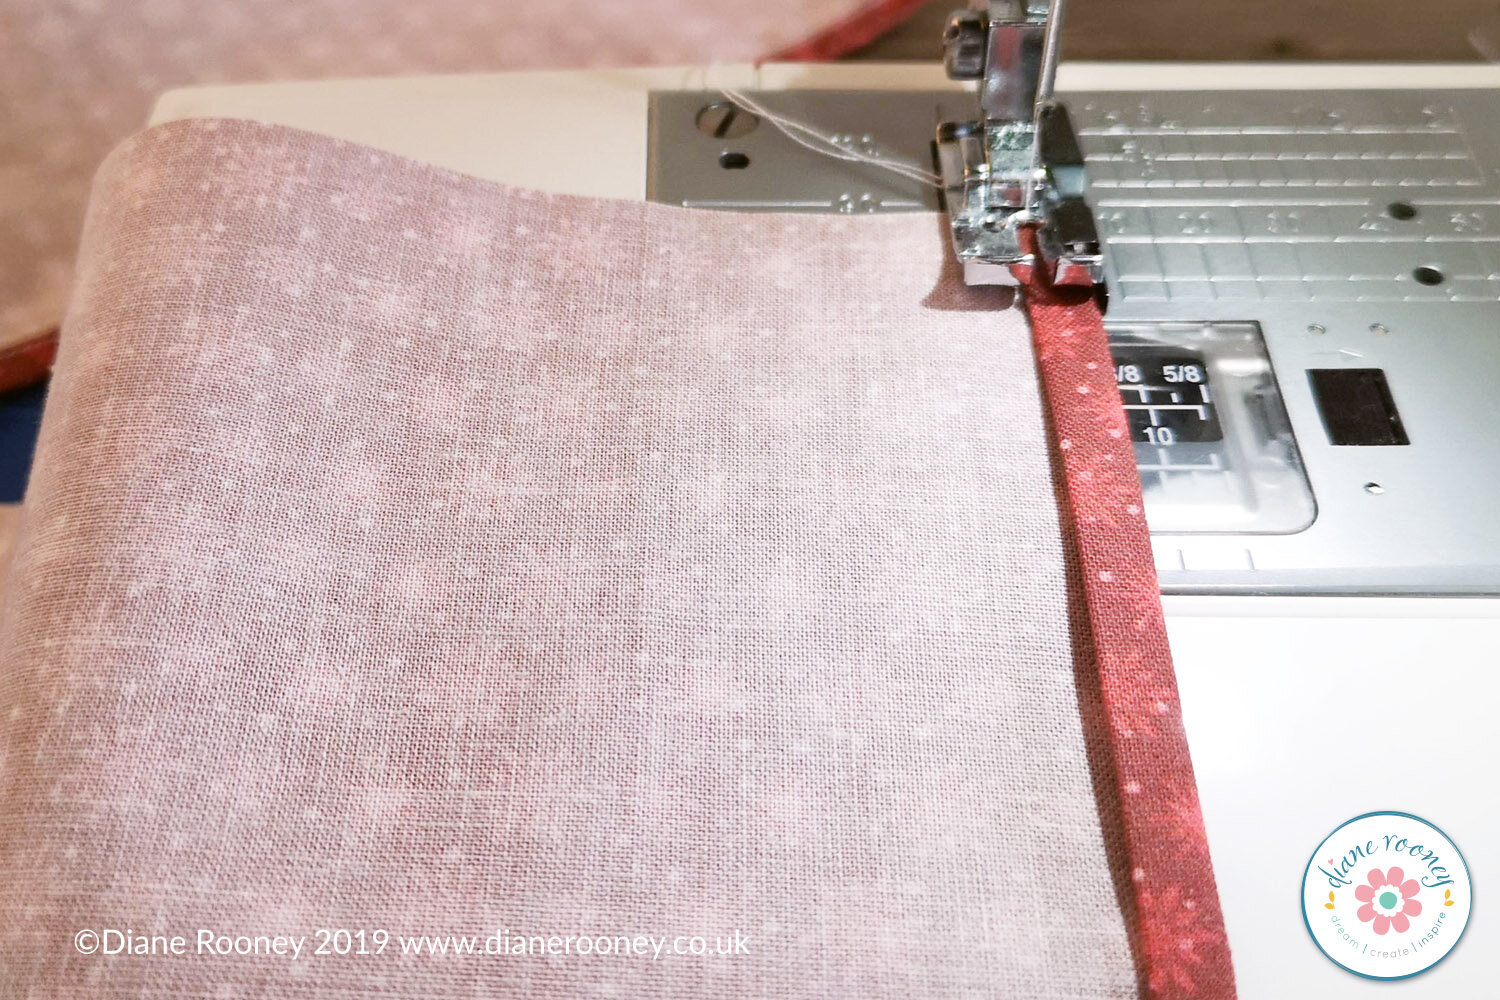 Sew straight stitch on each of the back panels to create a neat seam